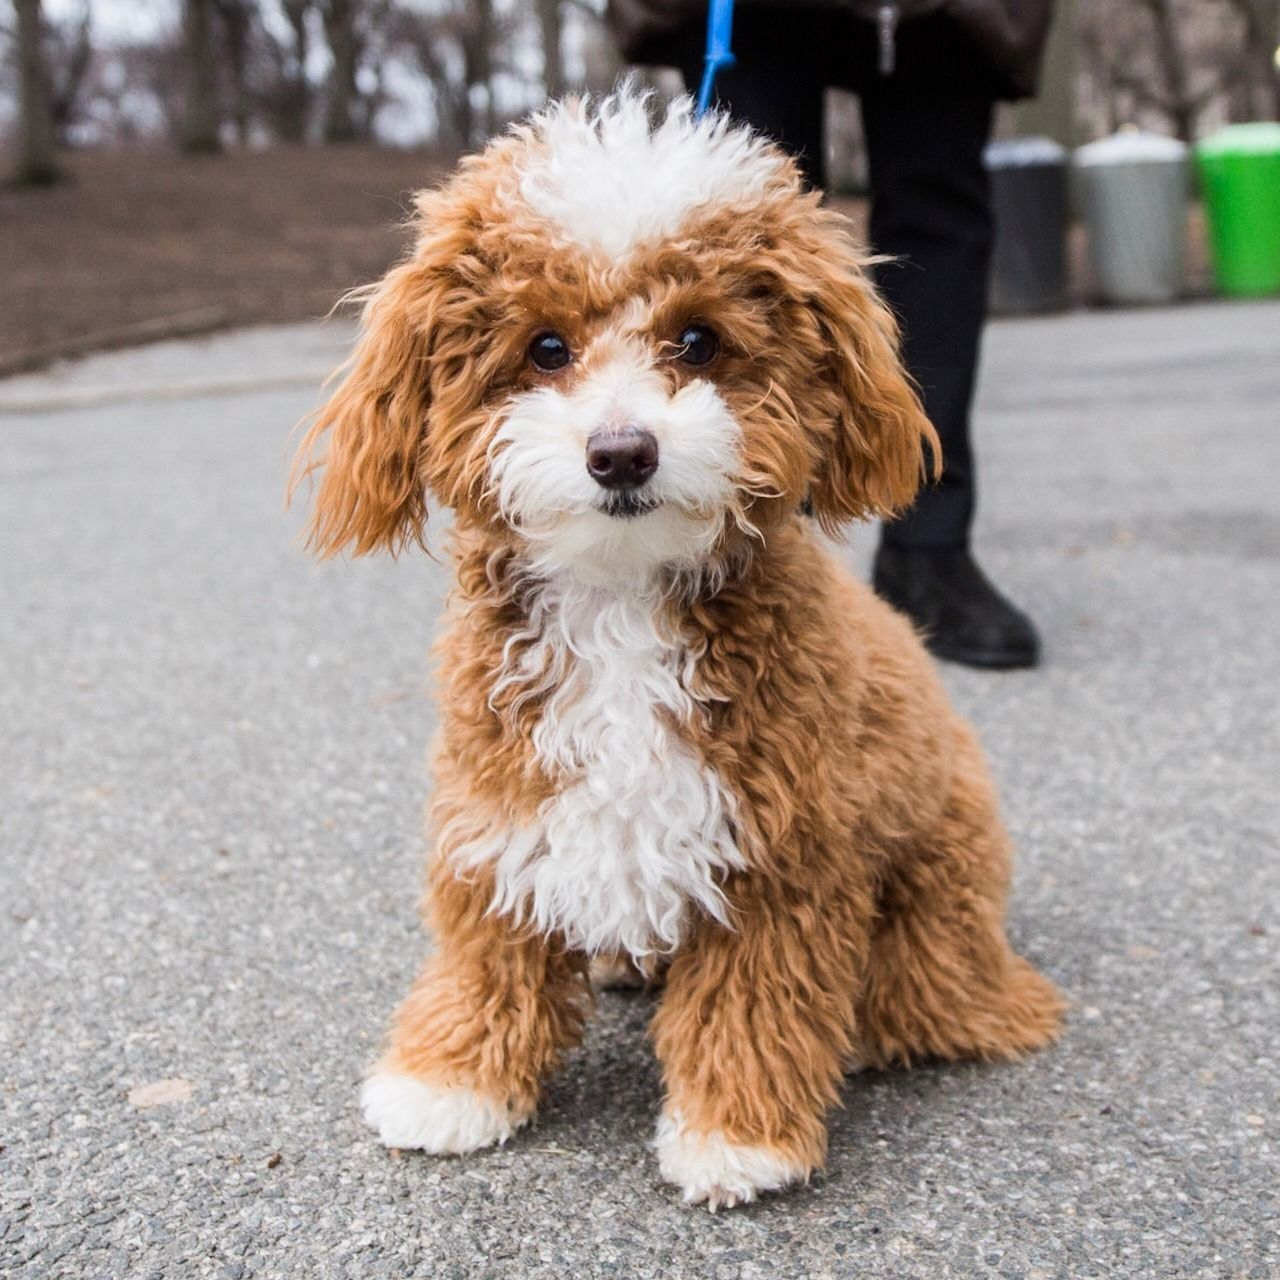 Oliver, Toy Poodle (10 m/o), Central Park, New York, NY